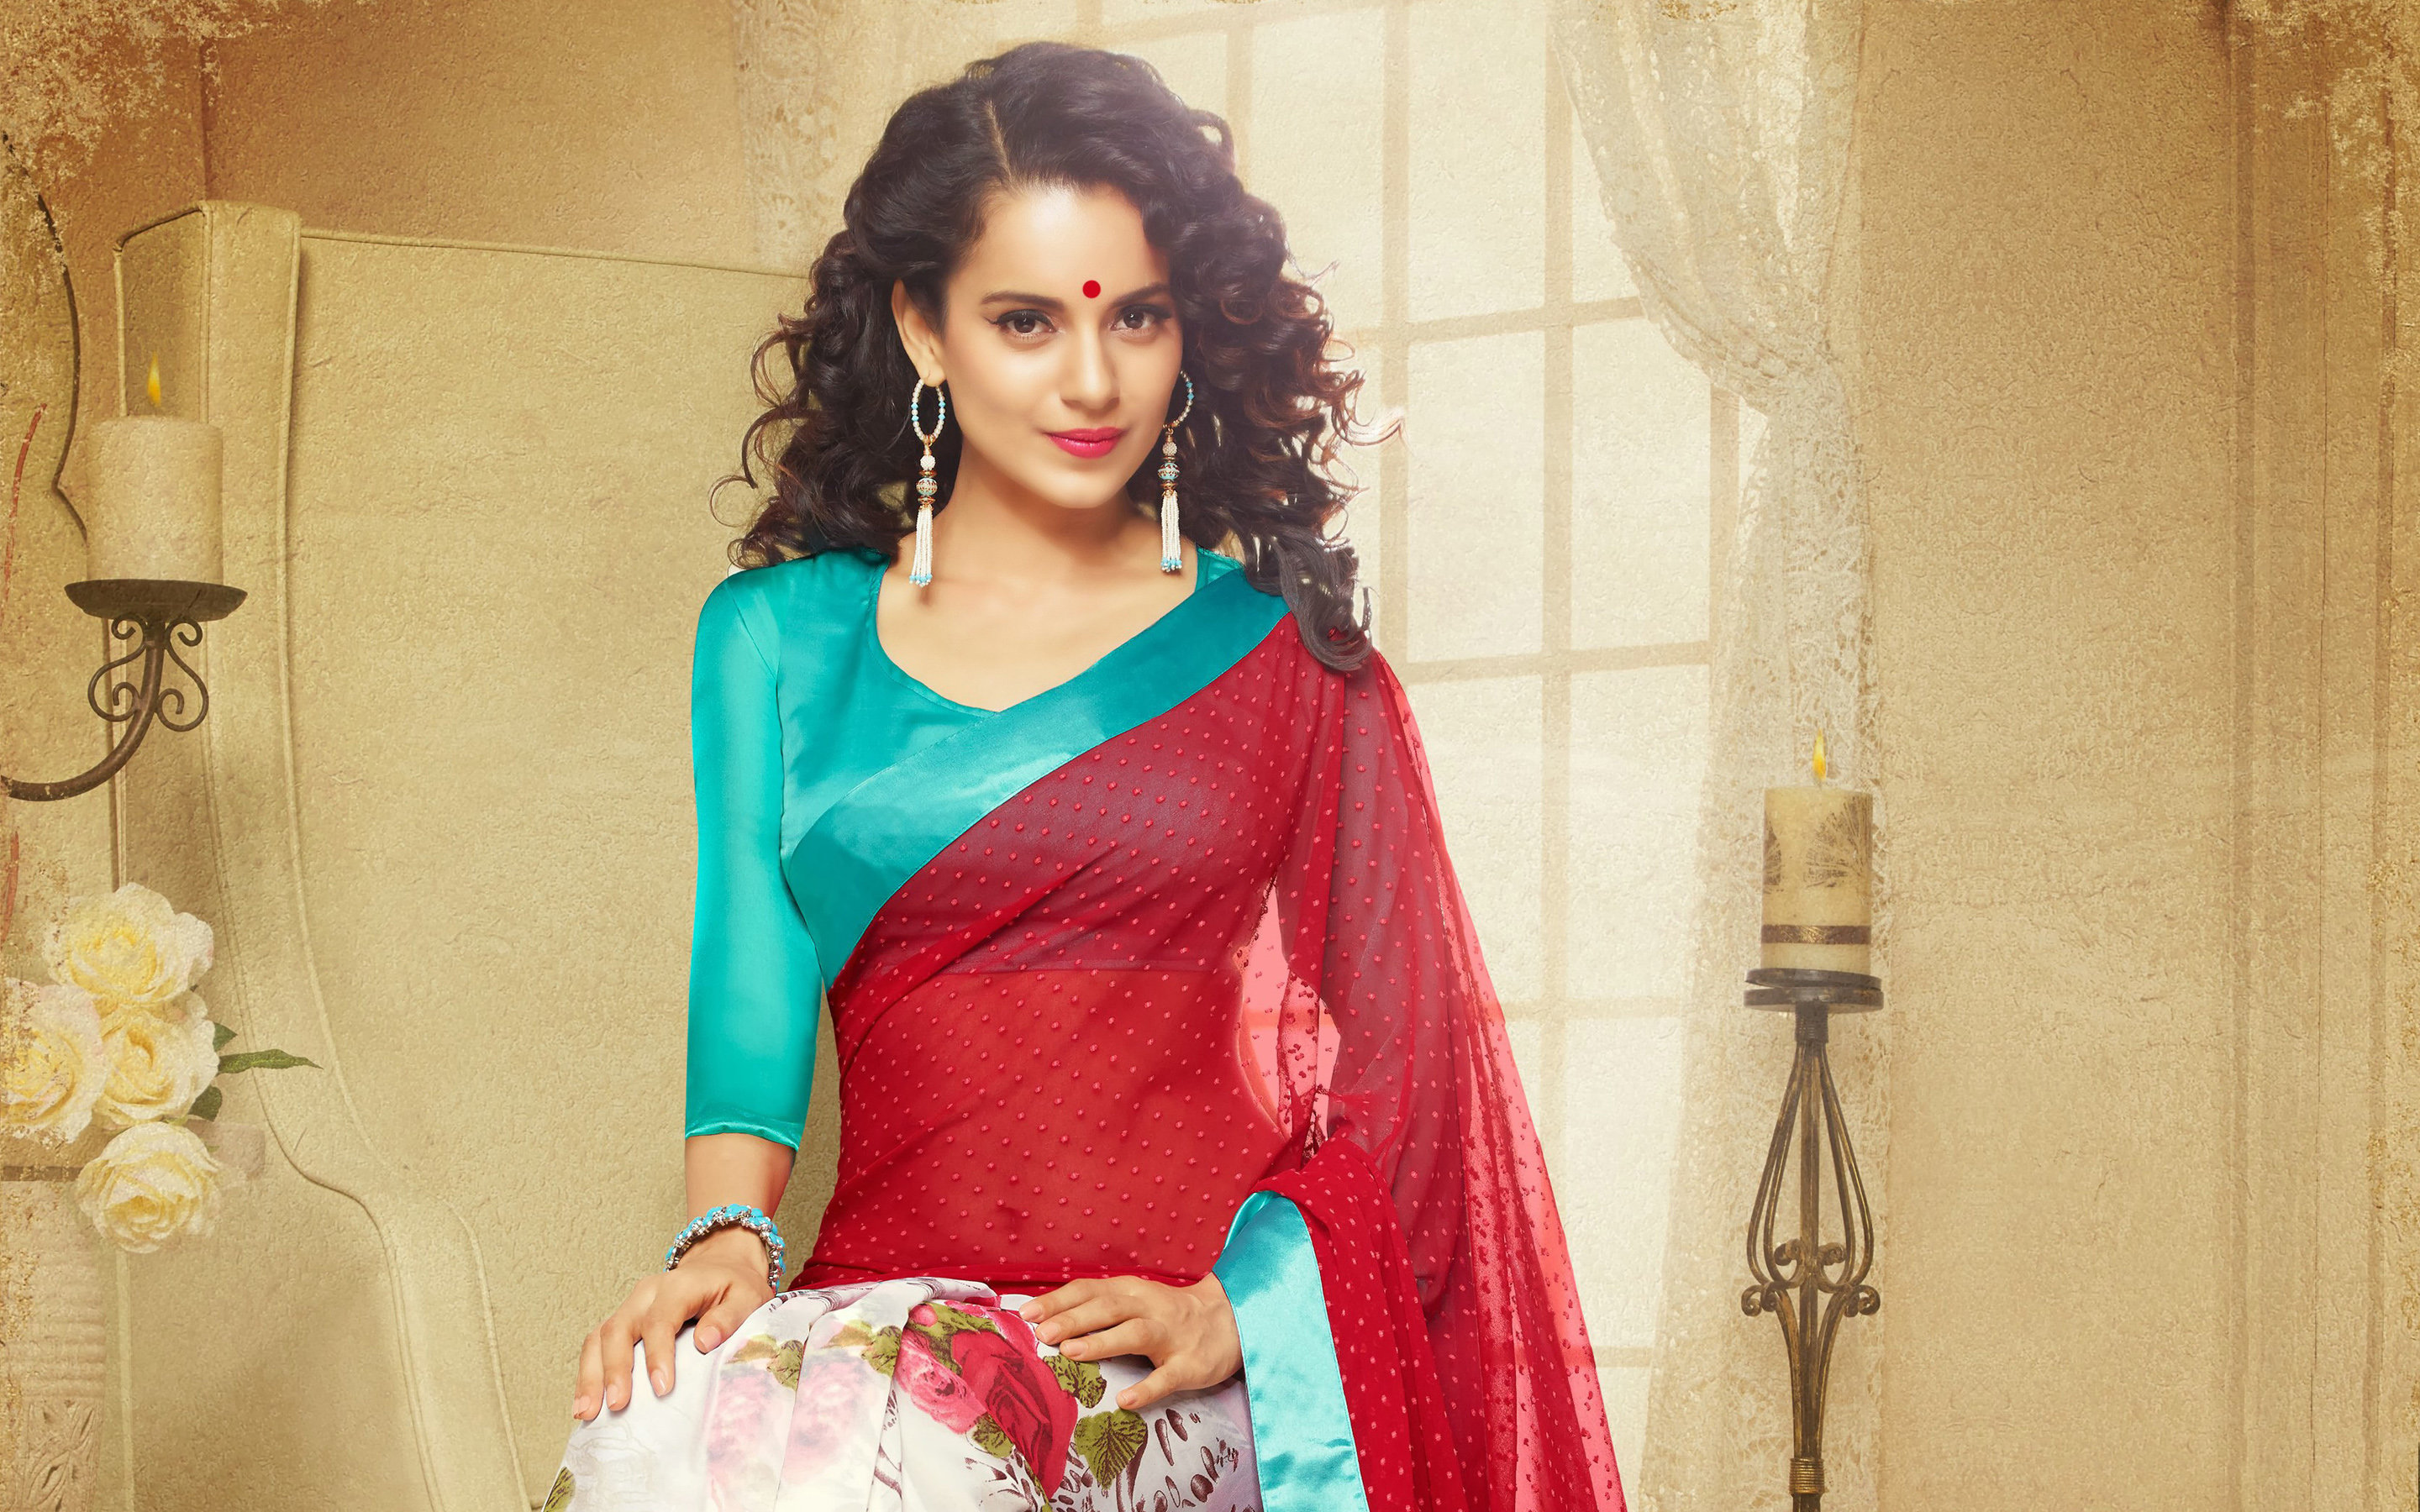 Free download Kangana Ranaut background ID:283371 hd 2880x1800 for computer